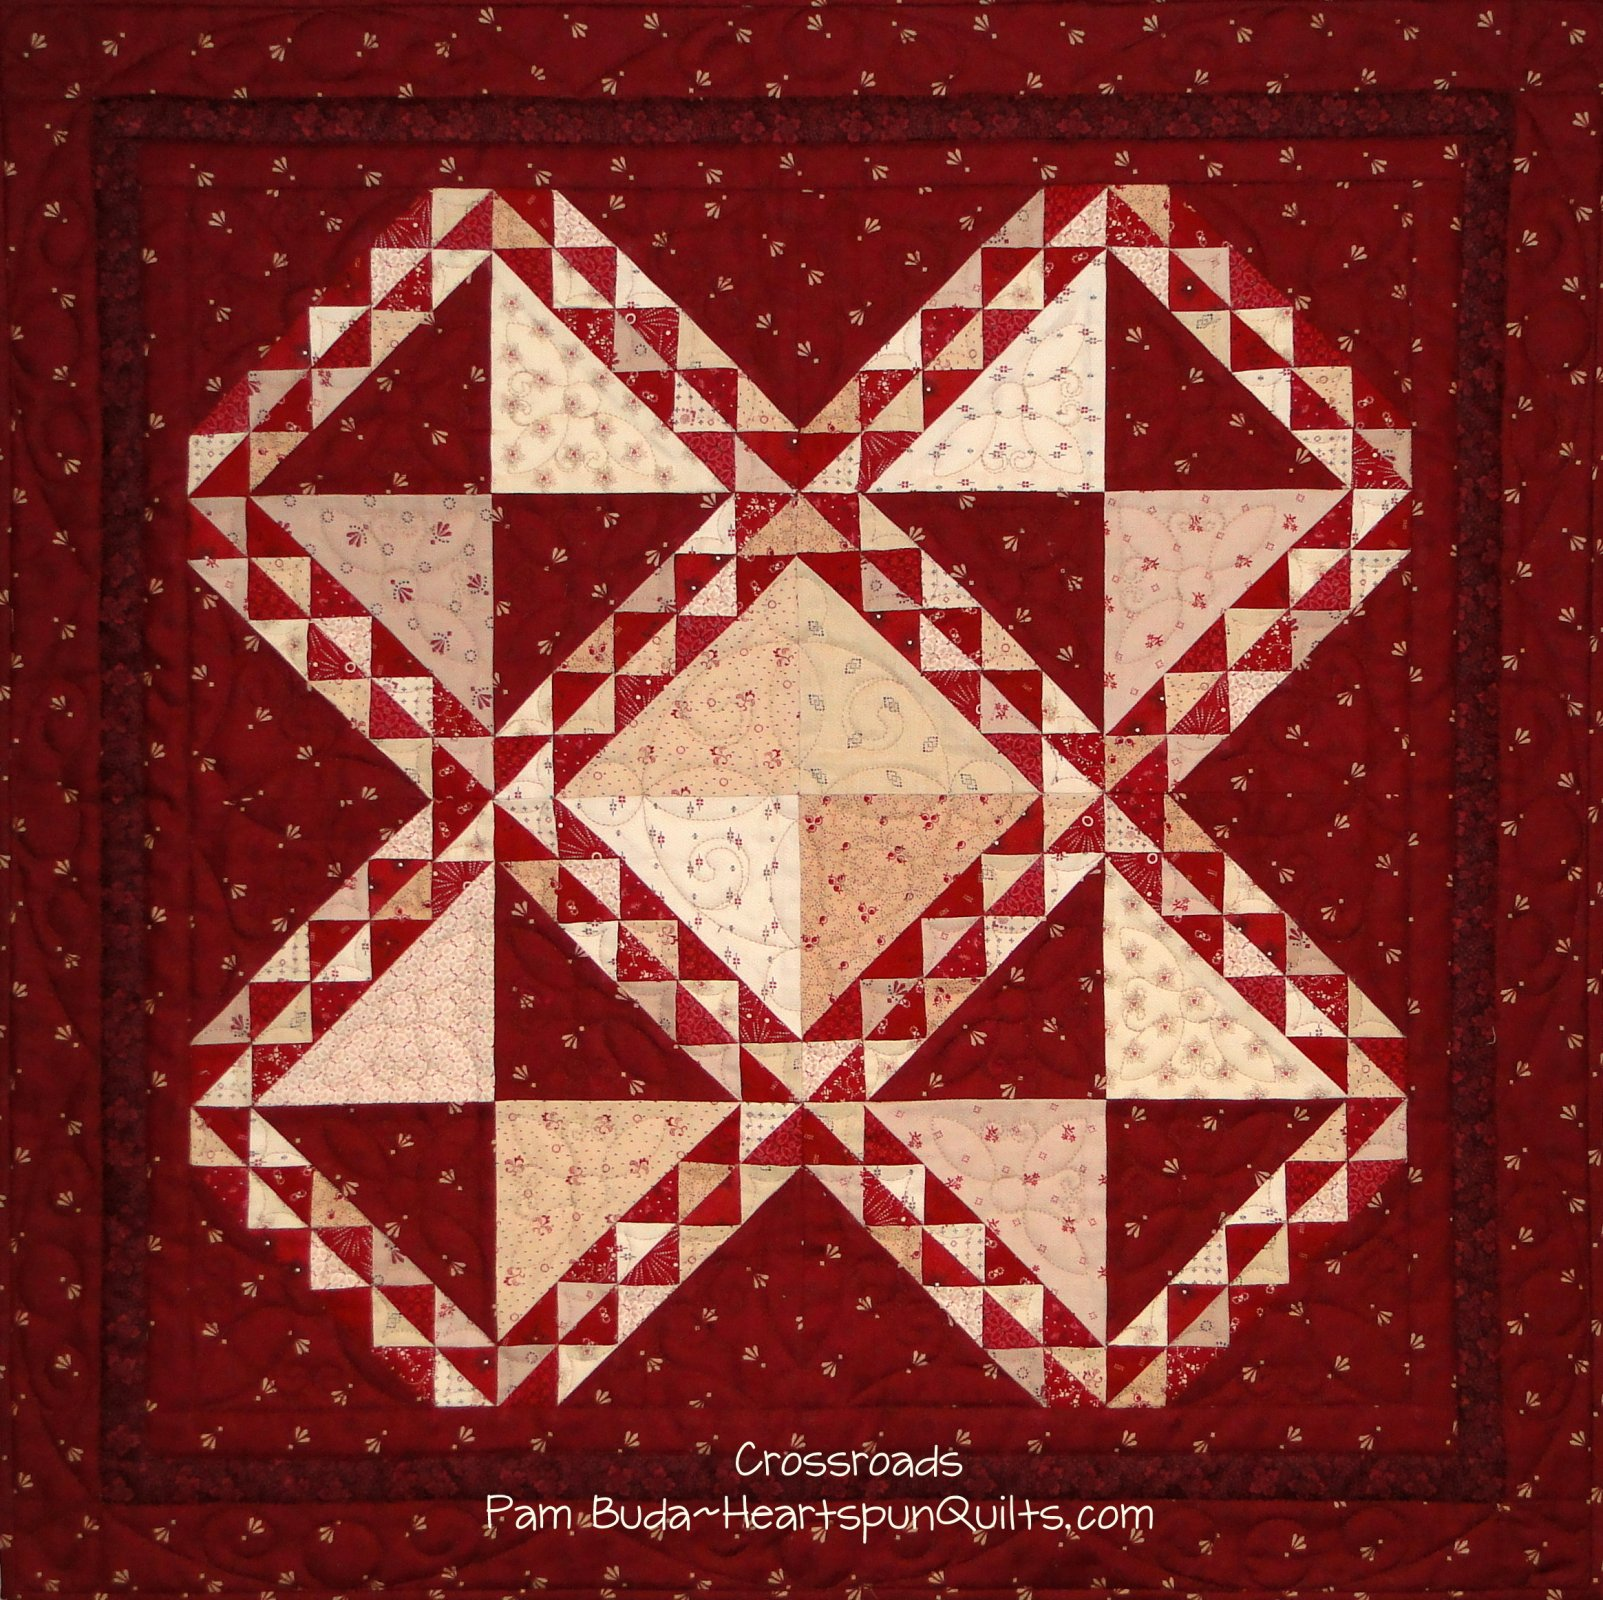 Crossroads ~ Limited Edition Quilt Kit & Pattern